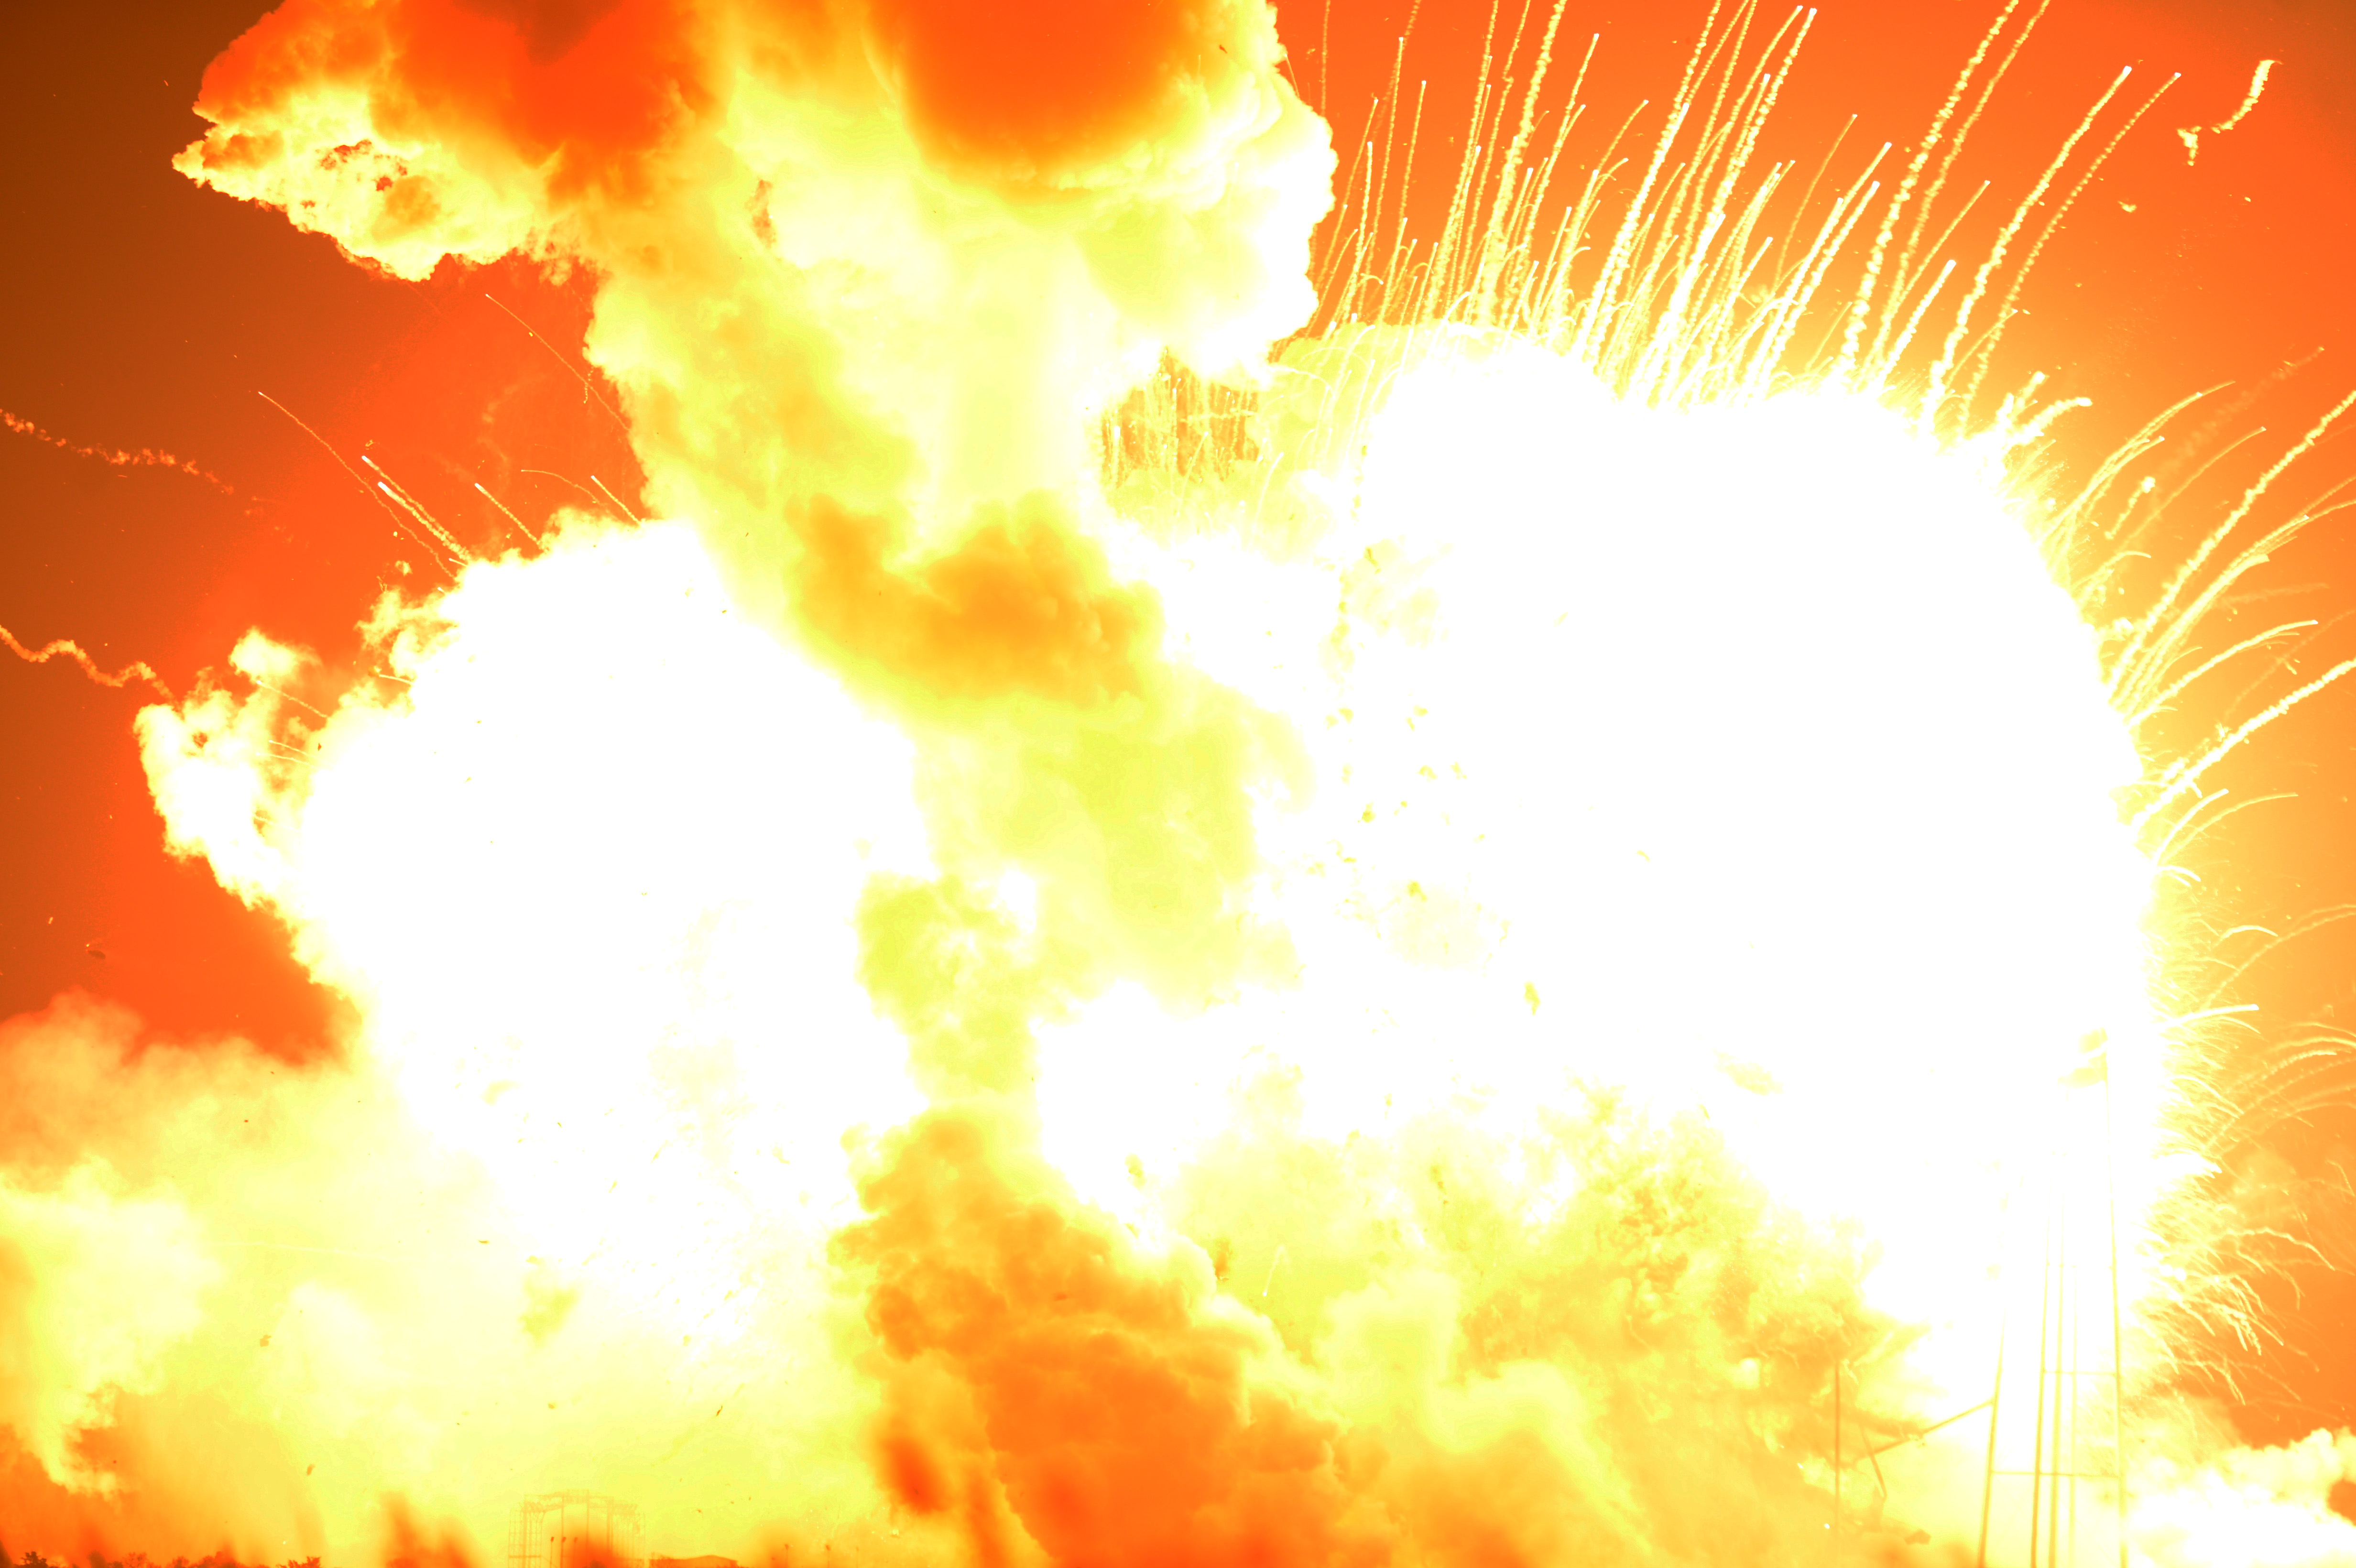 An unmanned Orbital Sciences Corp.'s Antares rocket explodes shortly after takeoff at Wallops Flight Facility on Wallops Island, Va. on Oct. 28, 2014.